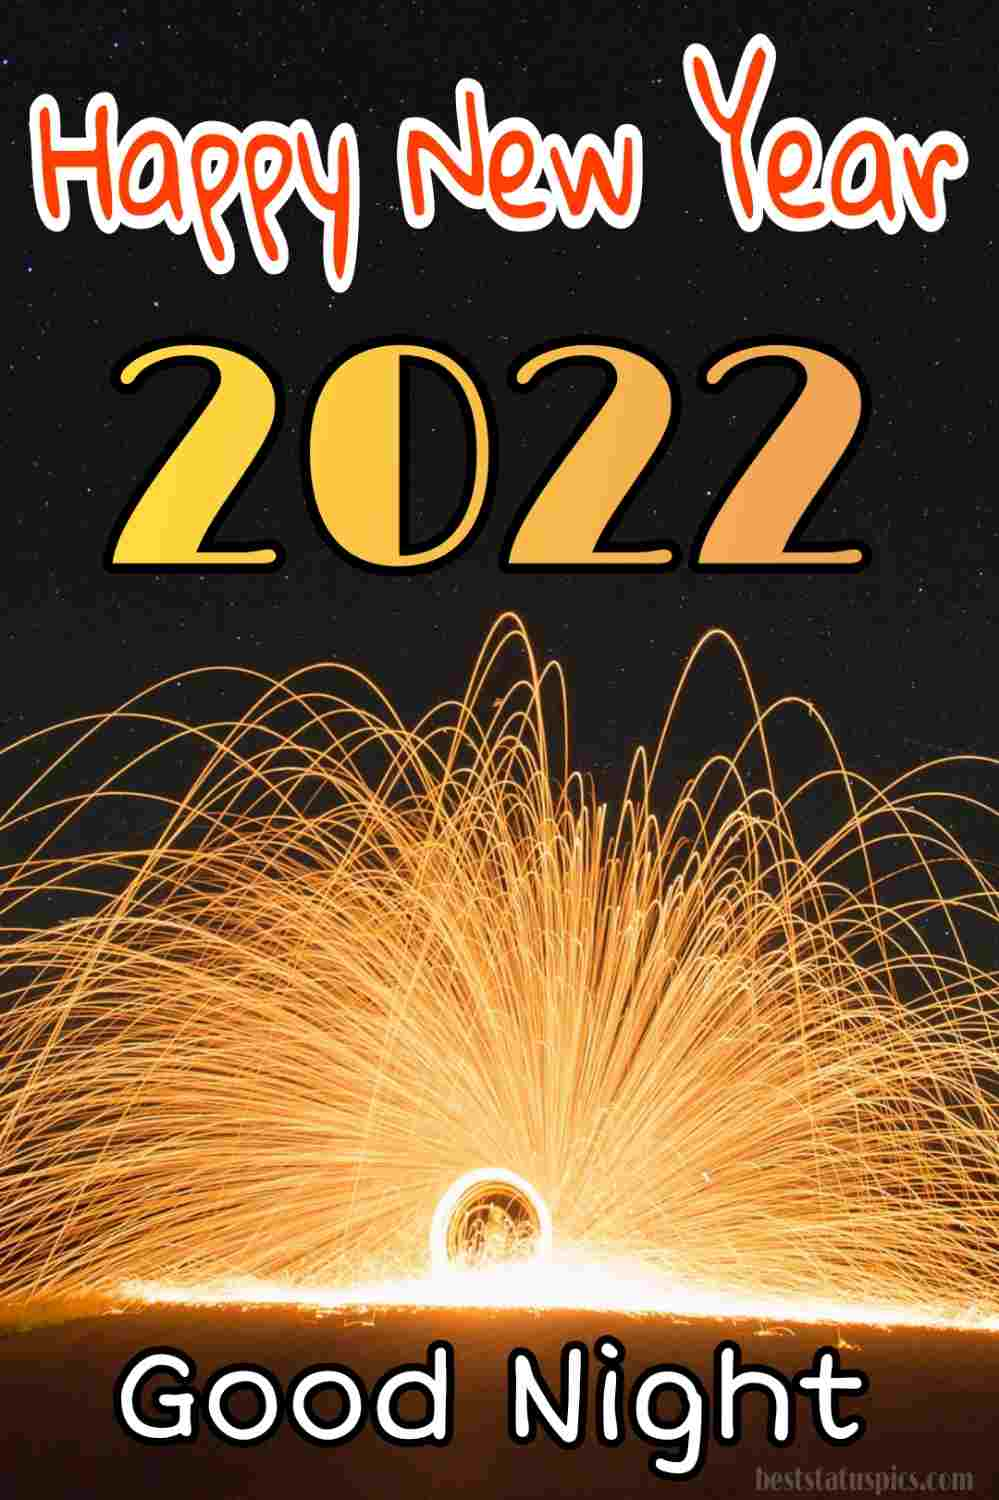 Beautiful Good night Happy new year 2022 images HD with fireworks for Whatsapp DP